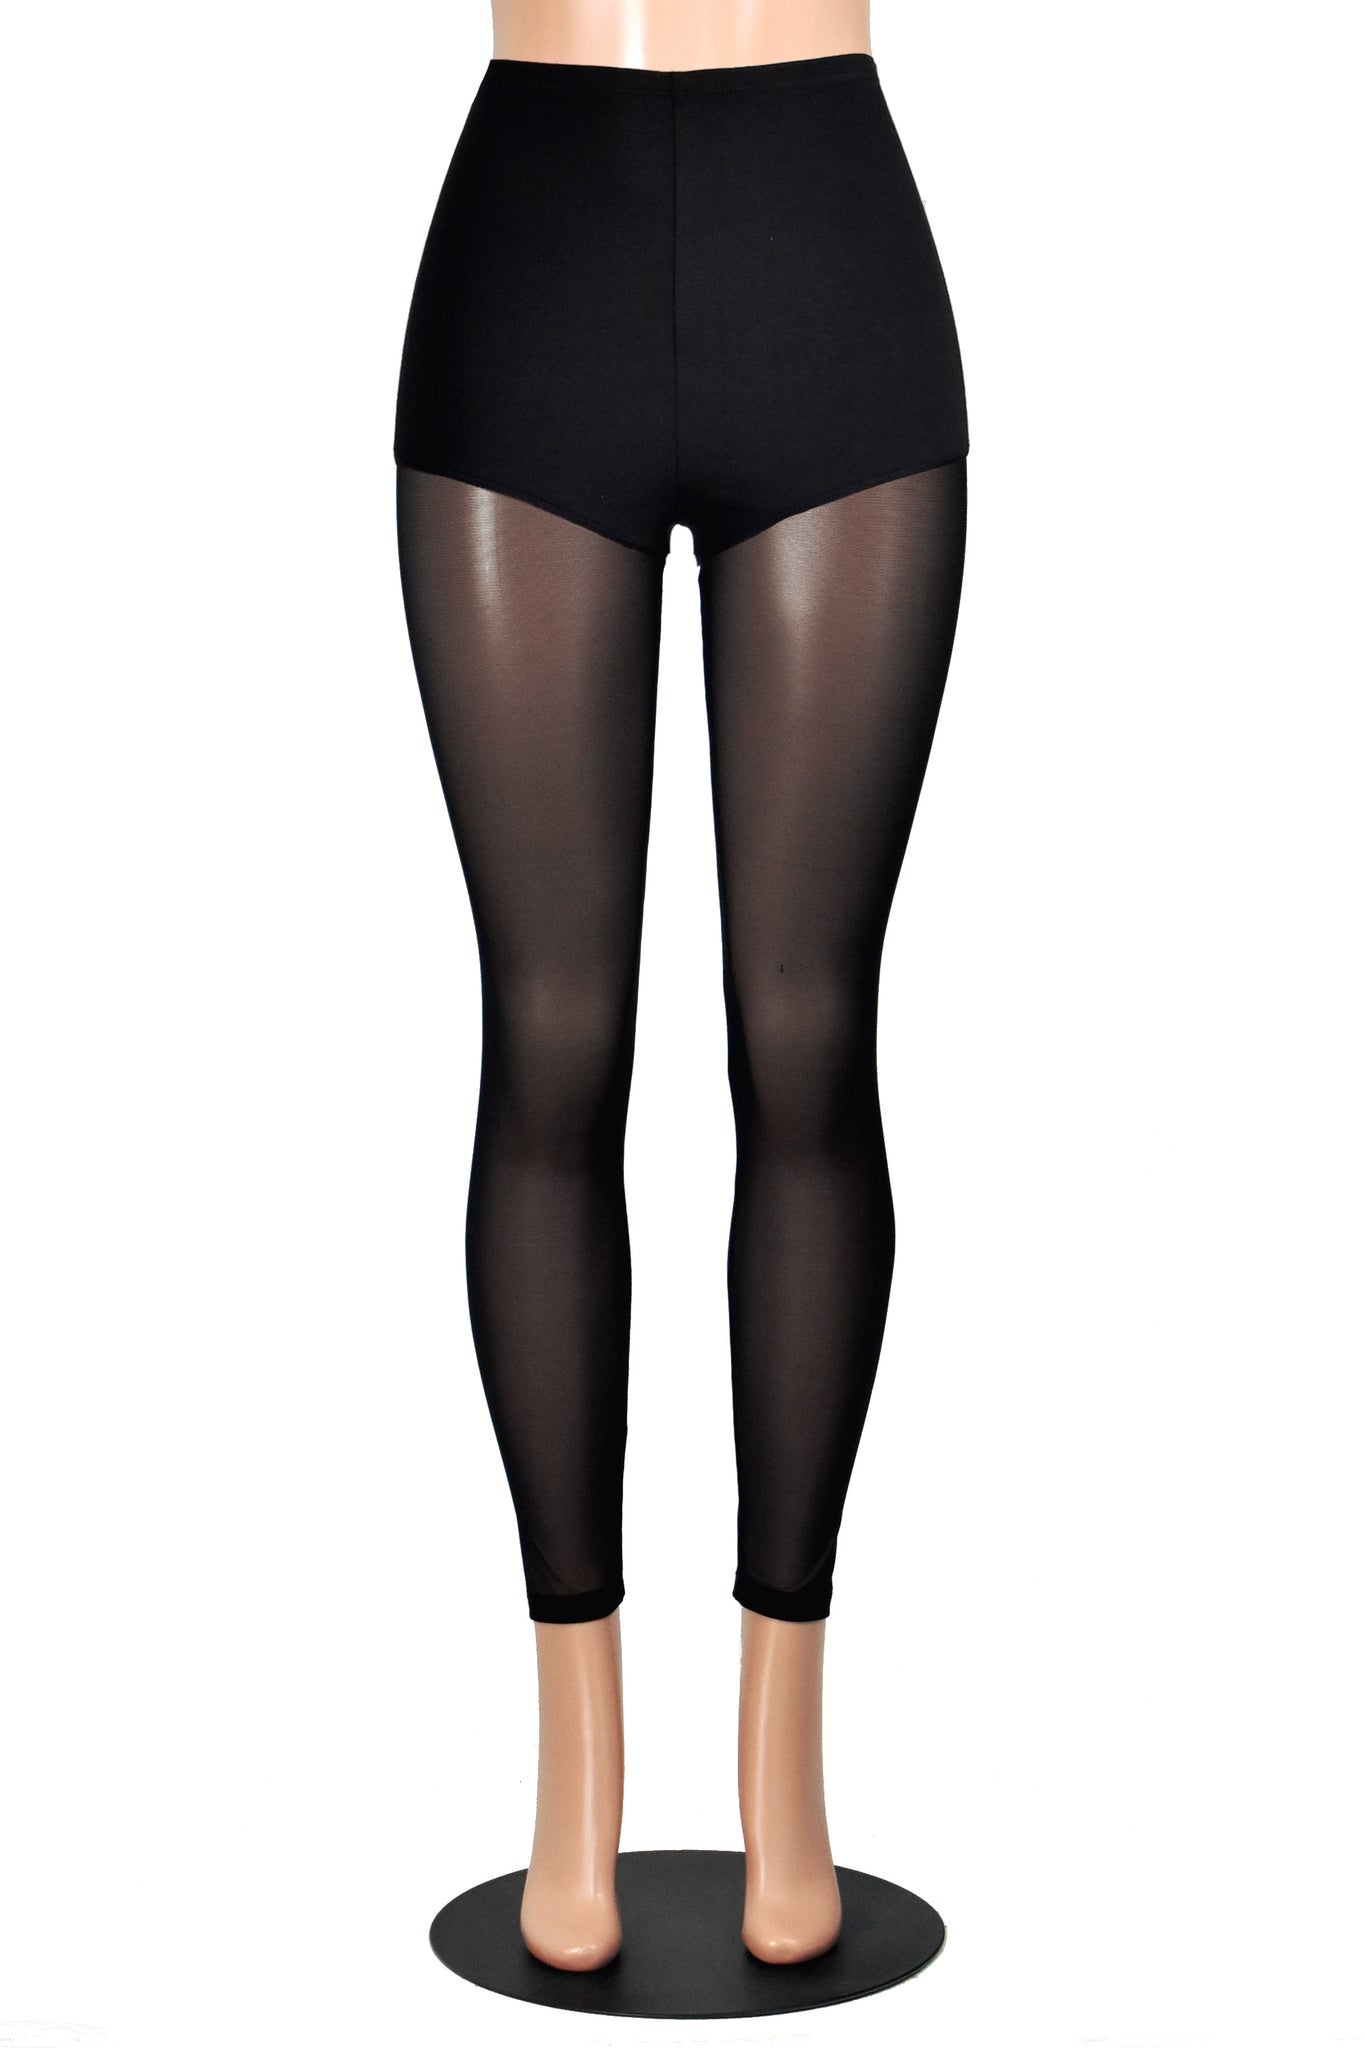 High-Waisted Black Cotton and Mesh Leggings